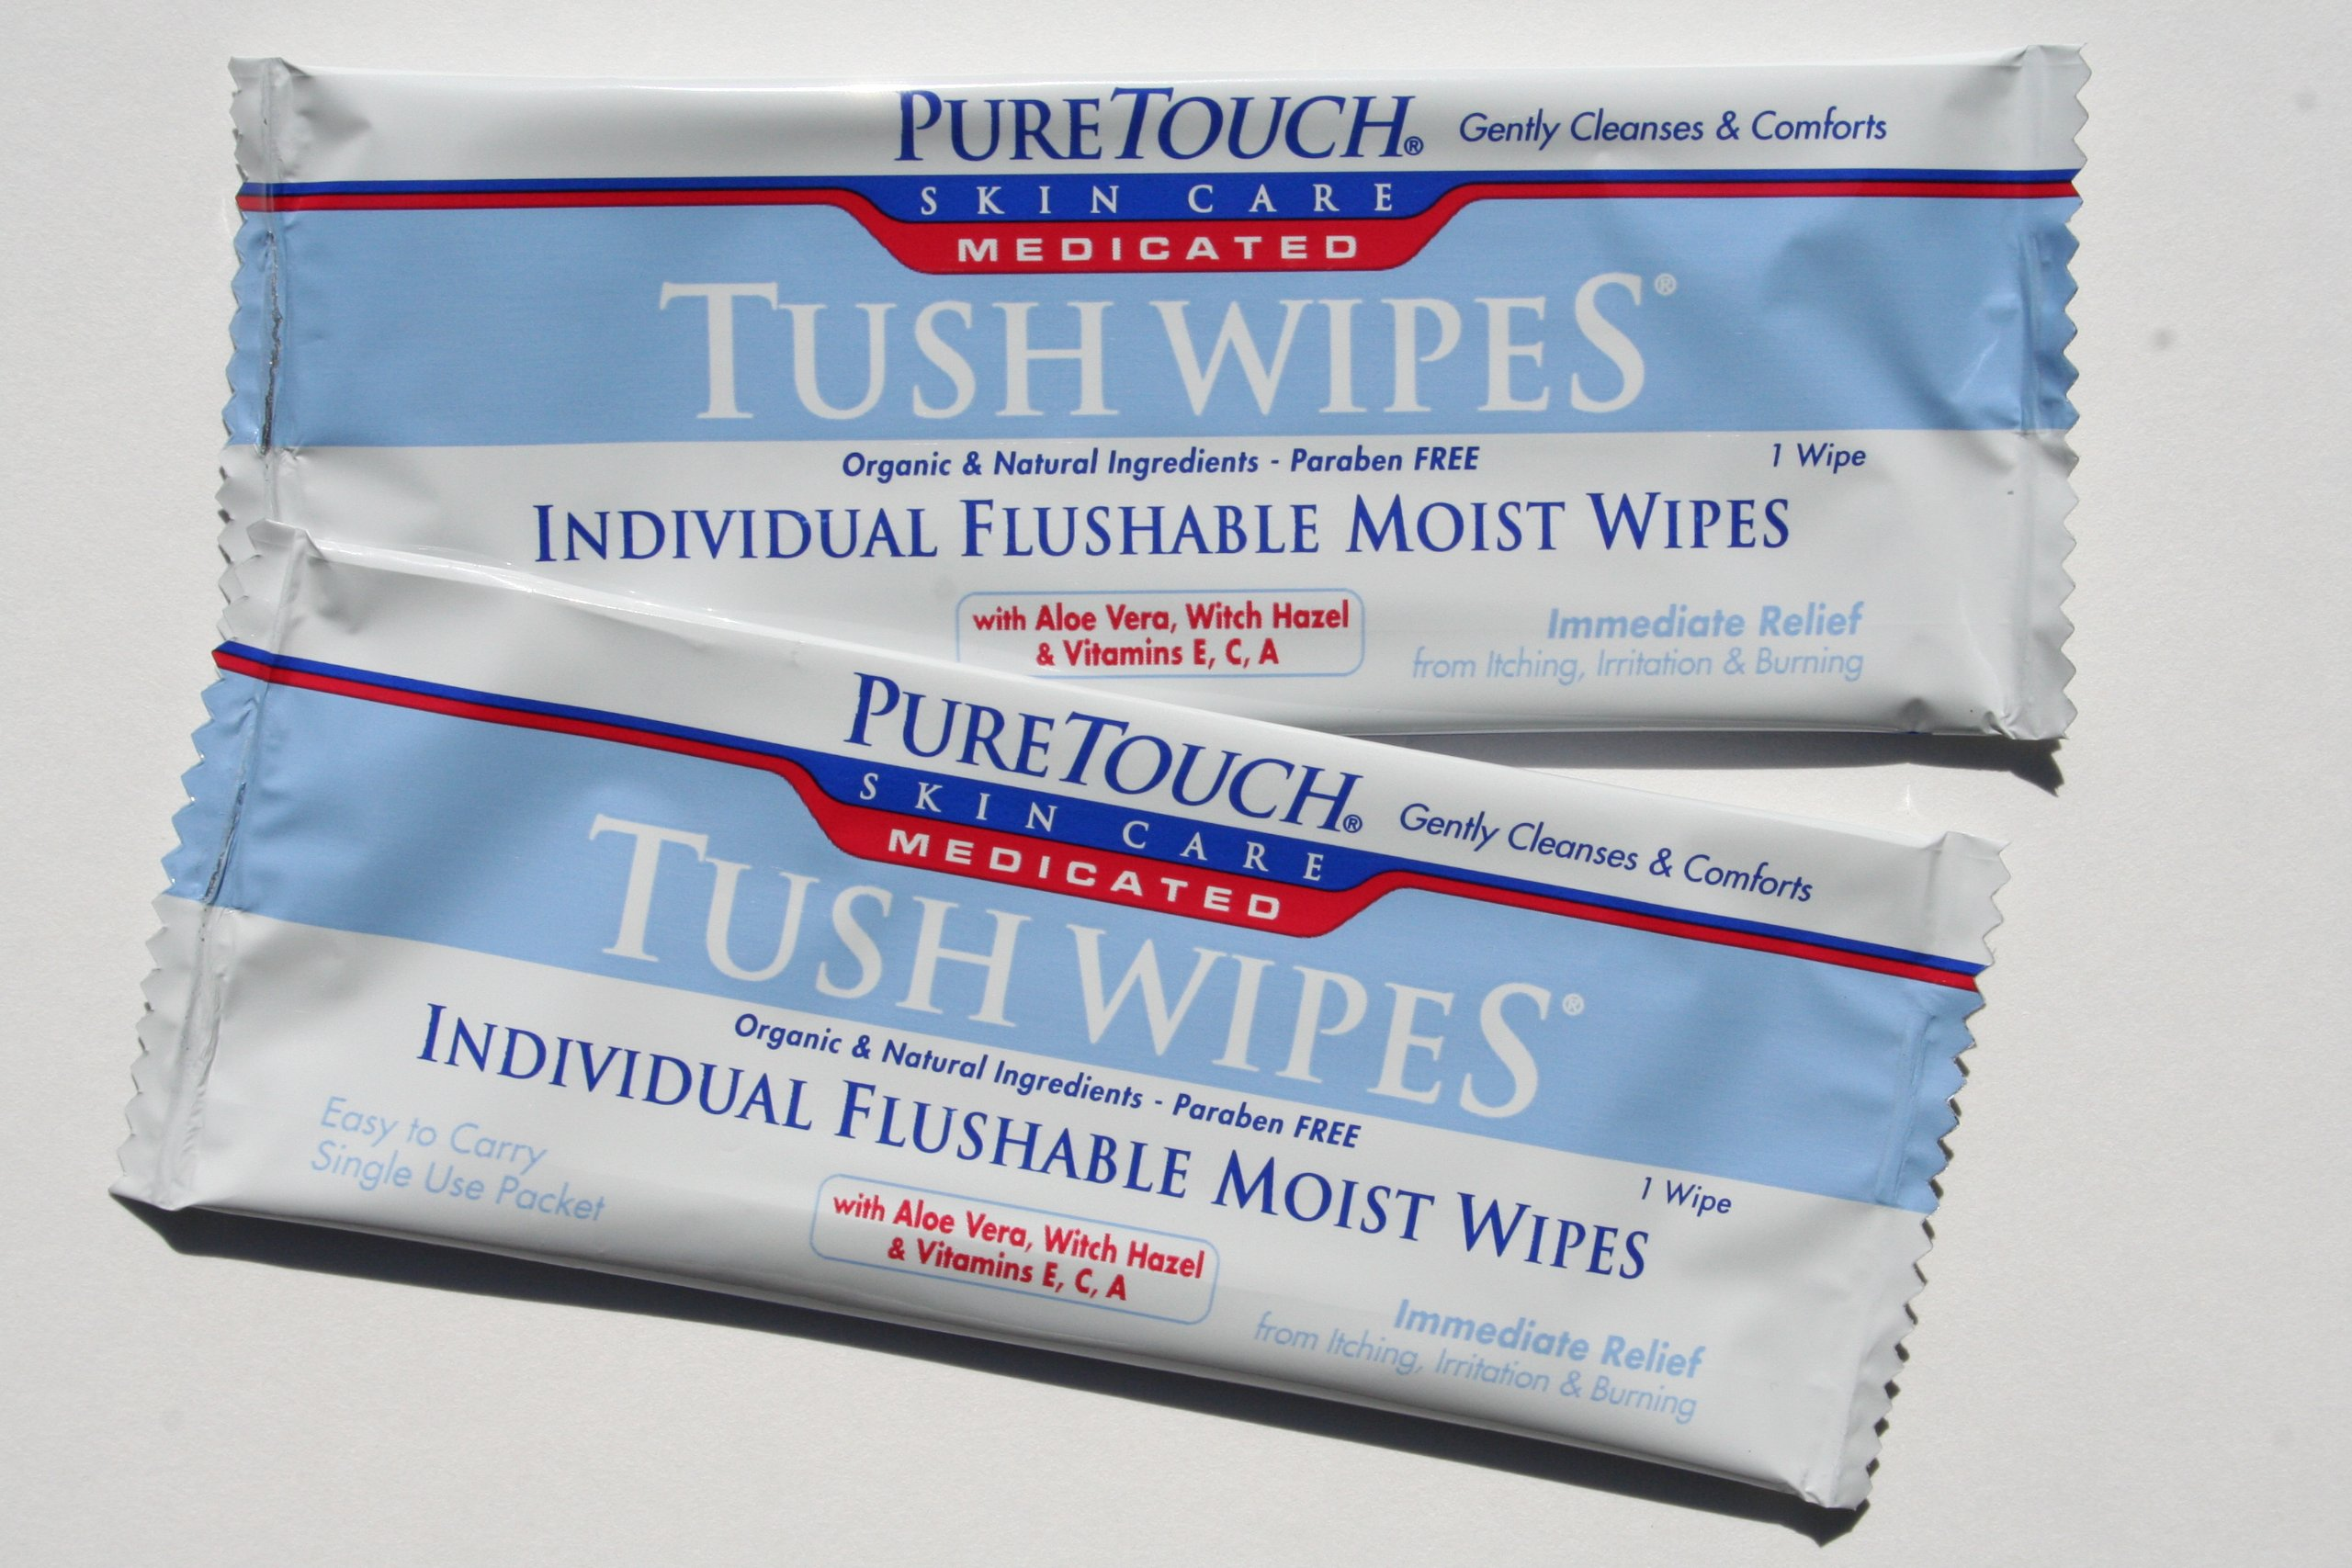 PureTouch MEDICATED Tush Wipes for adults Individual Flushable Moist Wipes BULK 350 Single-Use-Packets